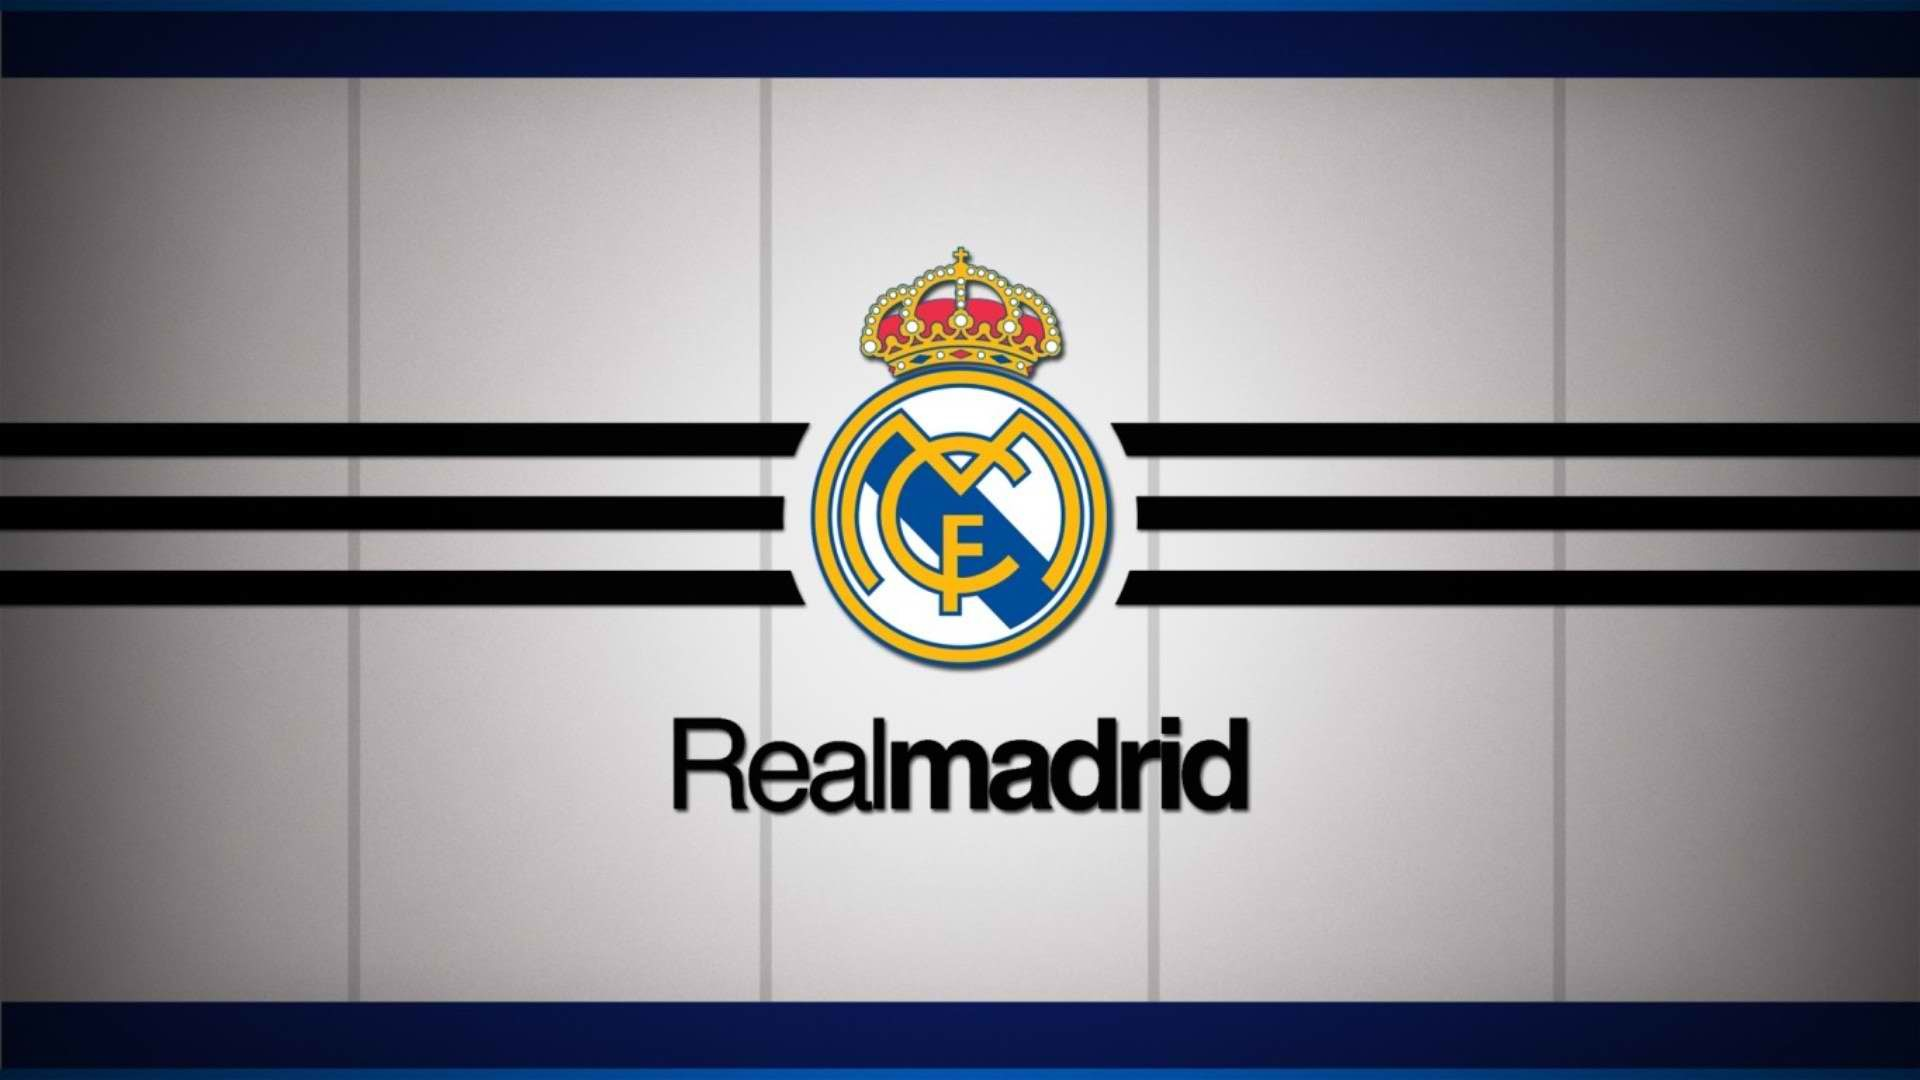 Real Madrid Logo Wallpaper Hd ①